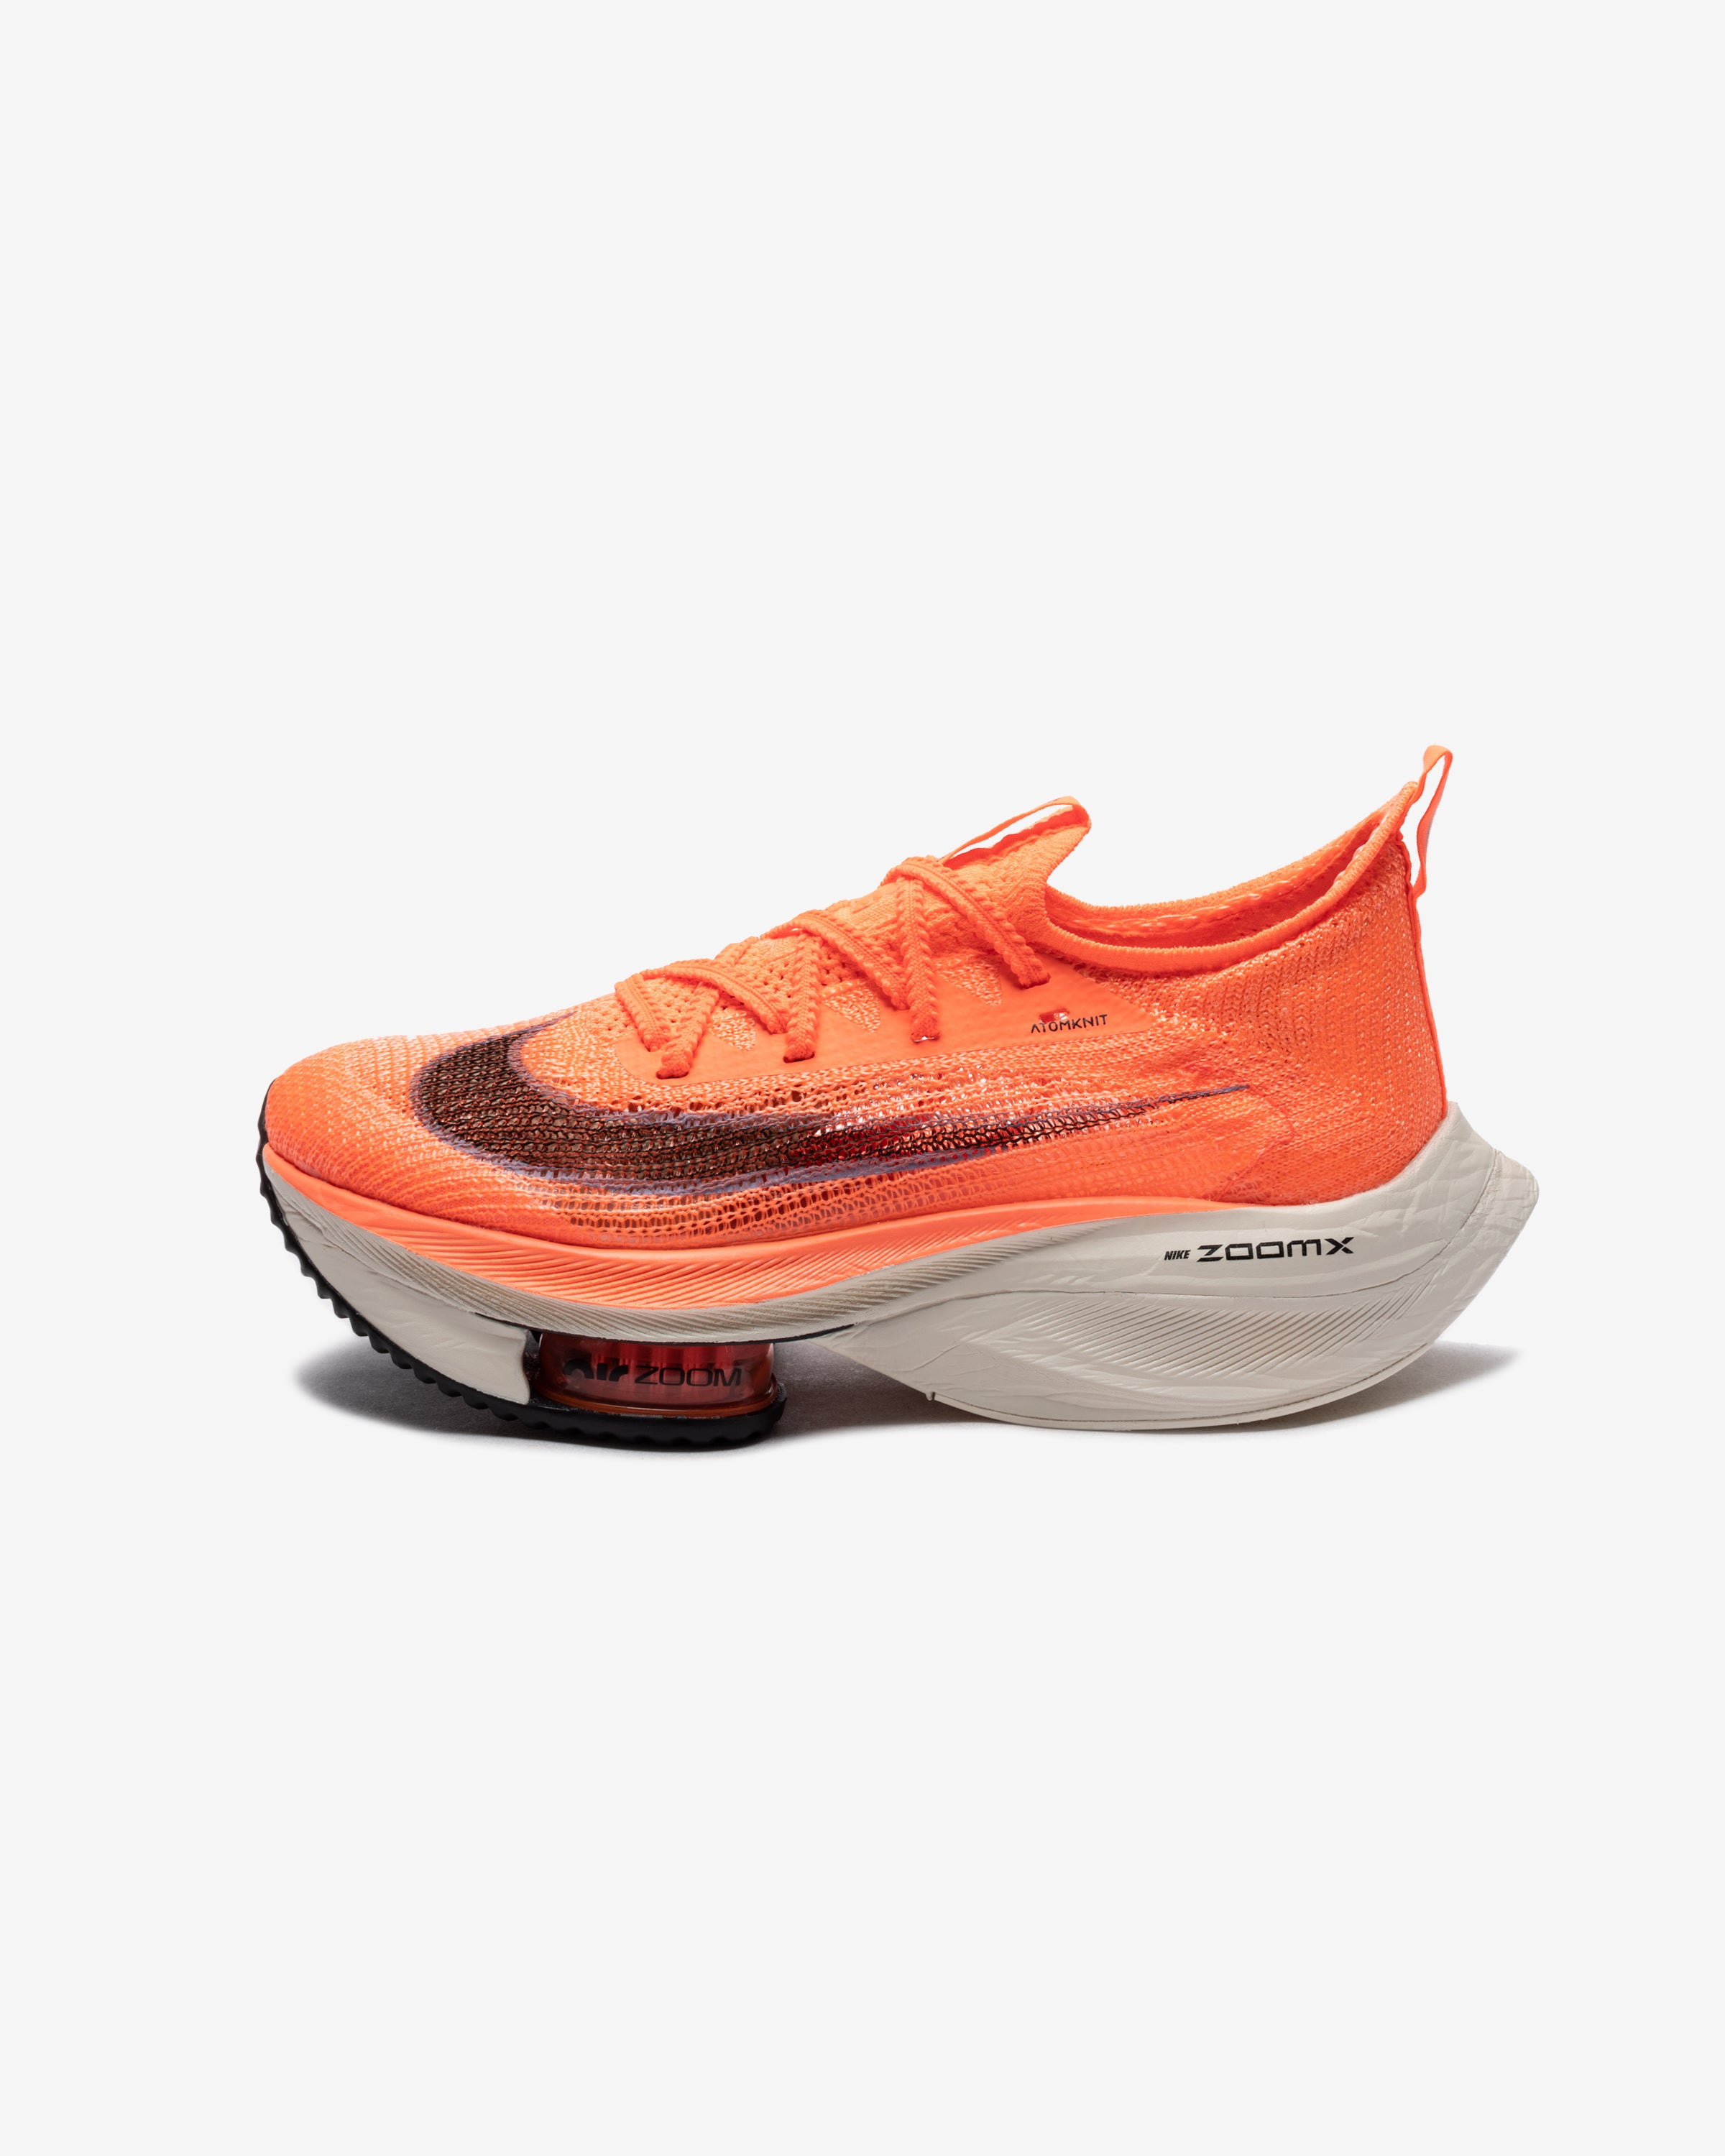 WOMEN'S AIR ZOOM ALPHAFLY NEXT% - BRIGHTMANGO/ CITRONPULSE